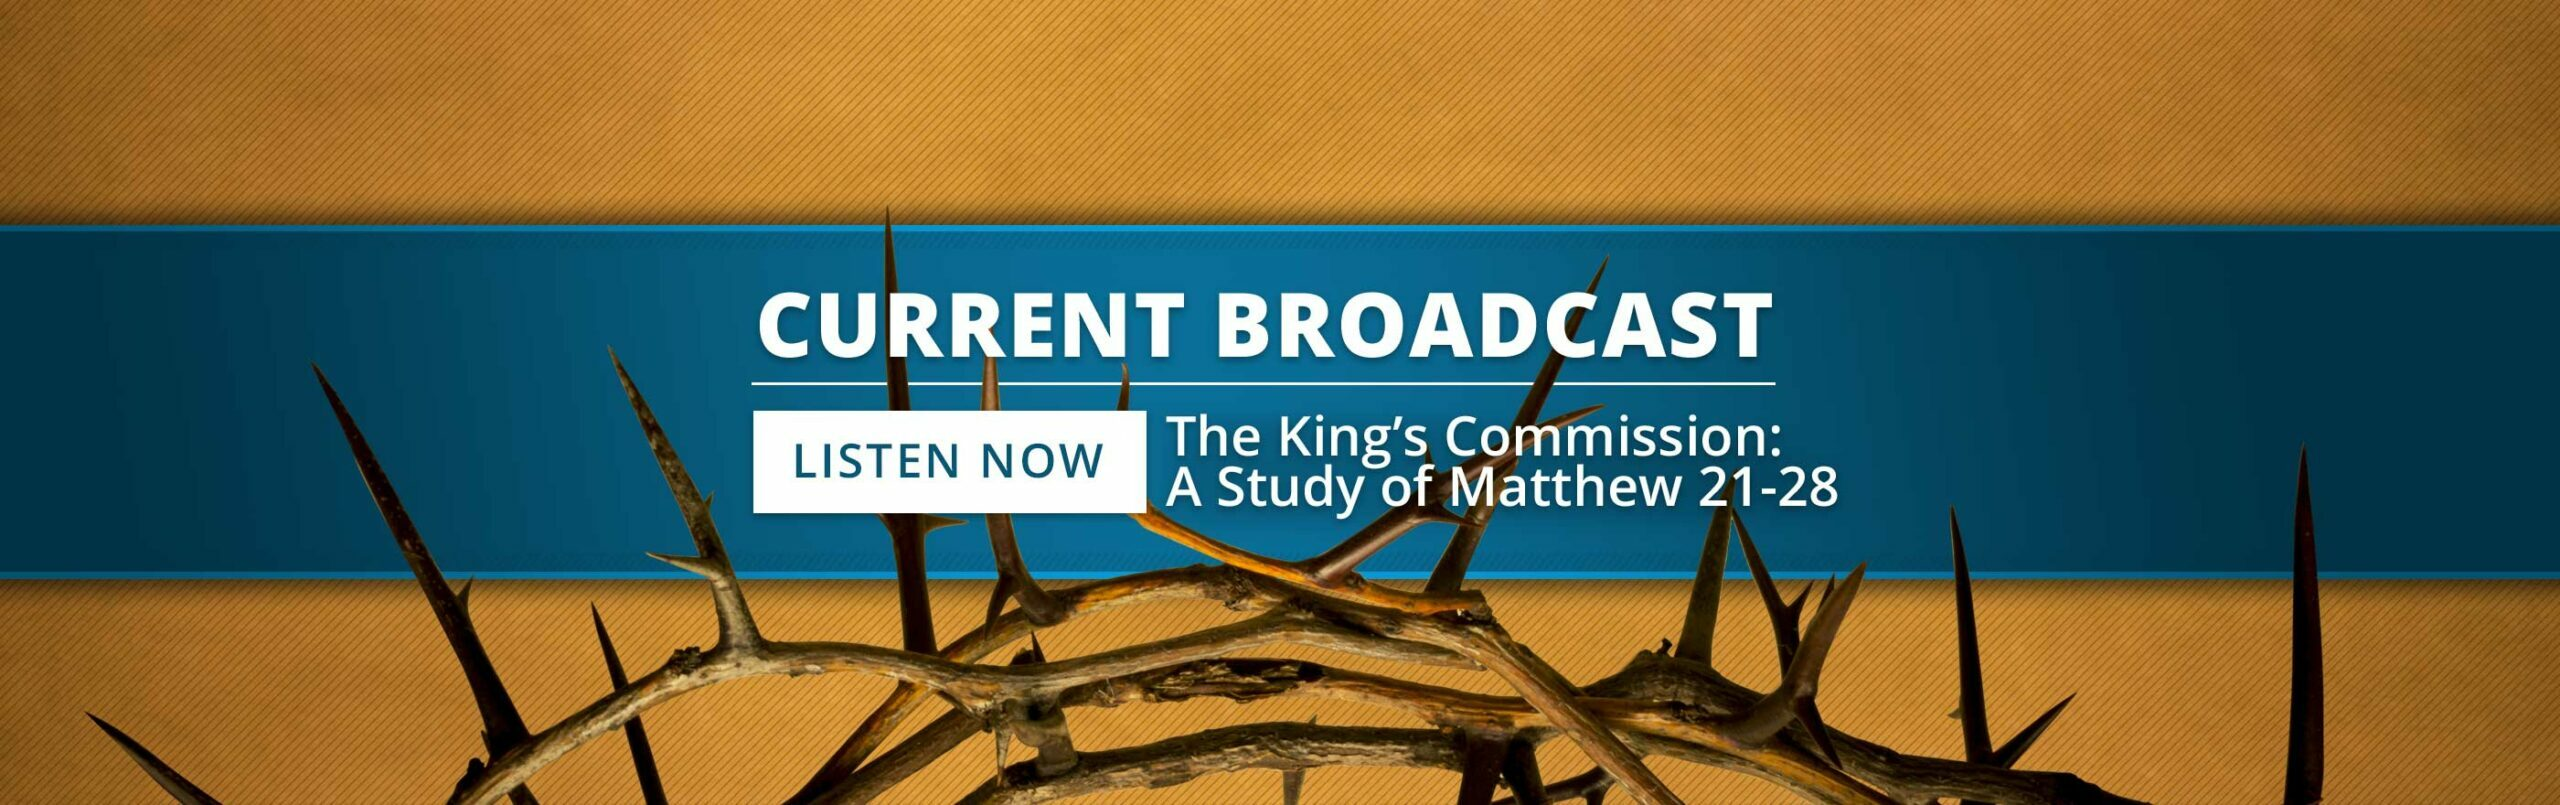 Current Broadcast: The King's Commission—A Study of Matthew 21-28